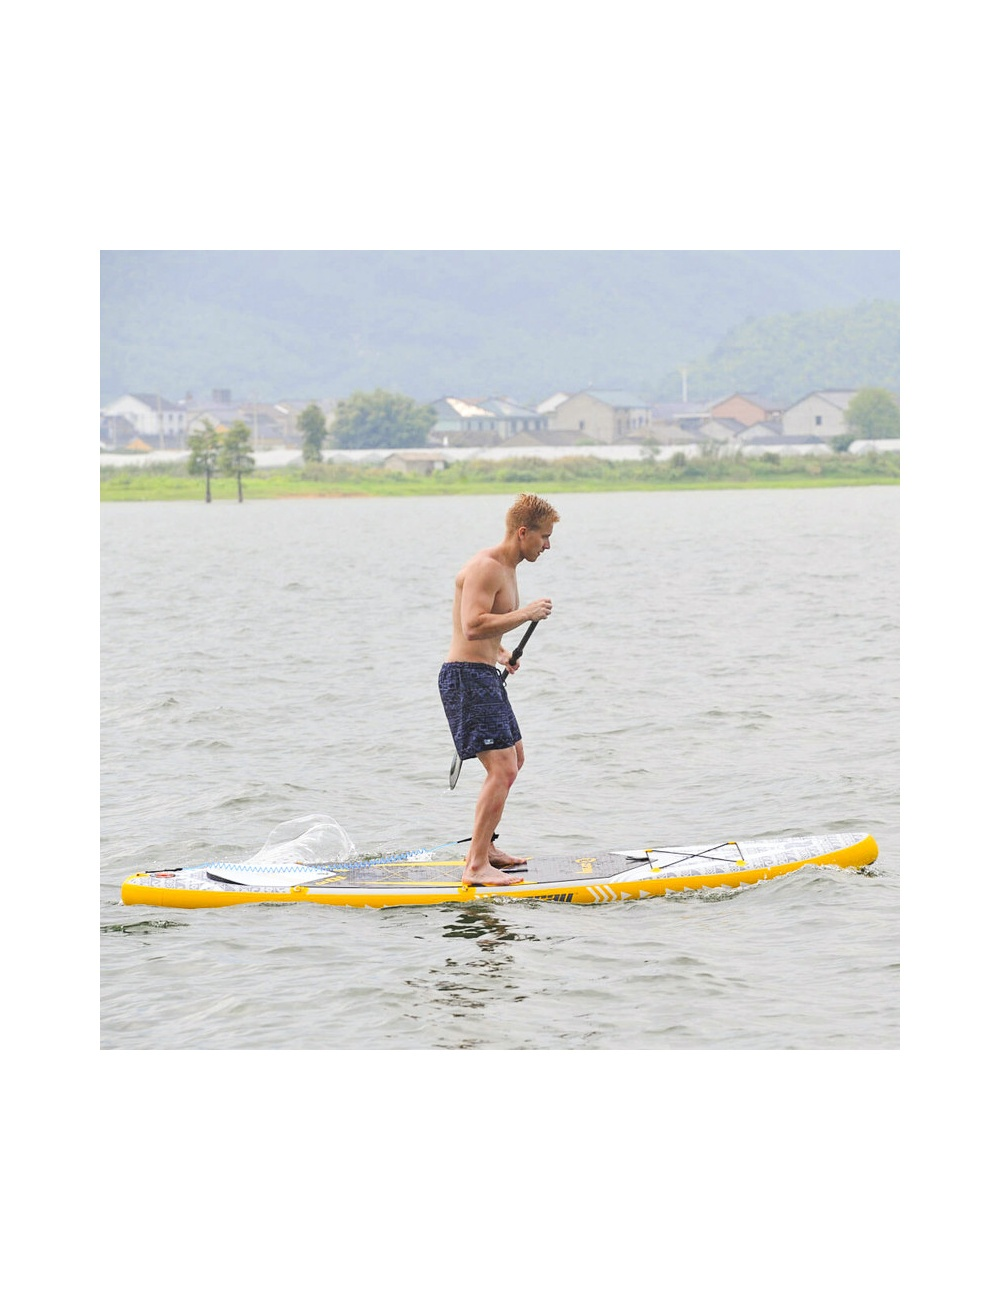 Zray X-rider X2 Deluxe 10,10' inflatable SUP board